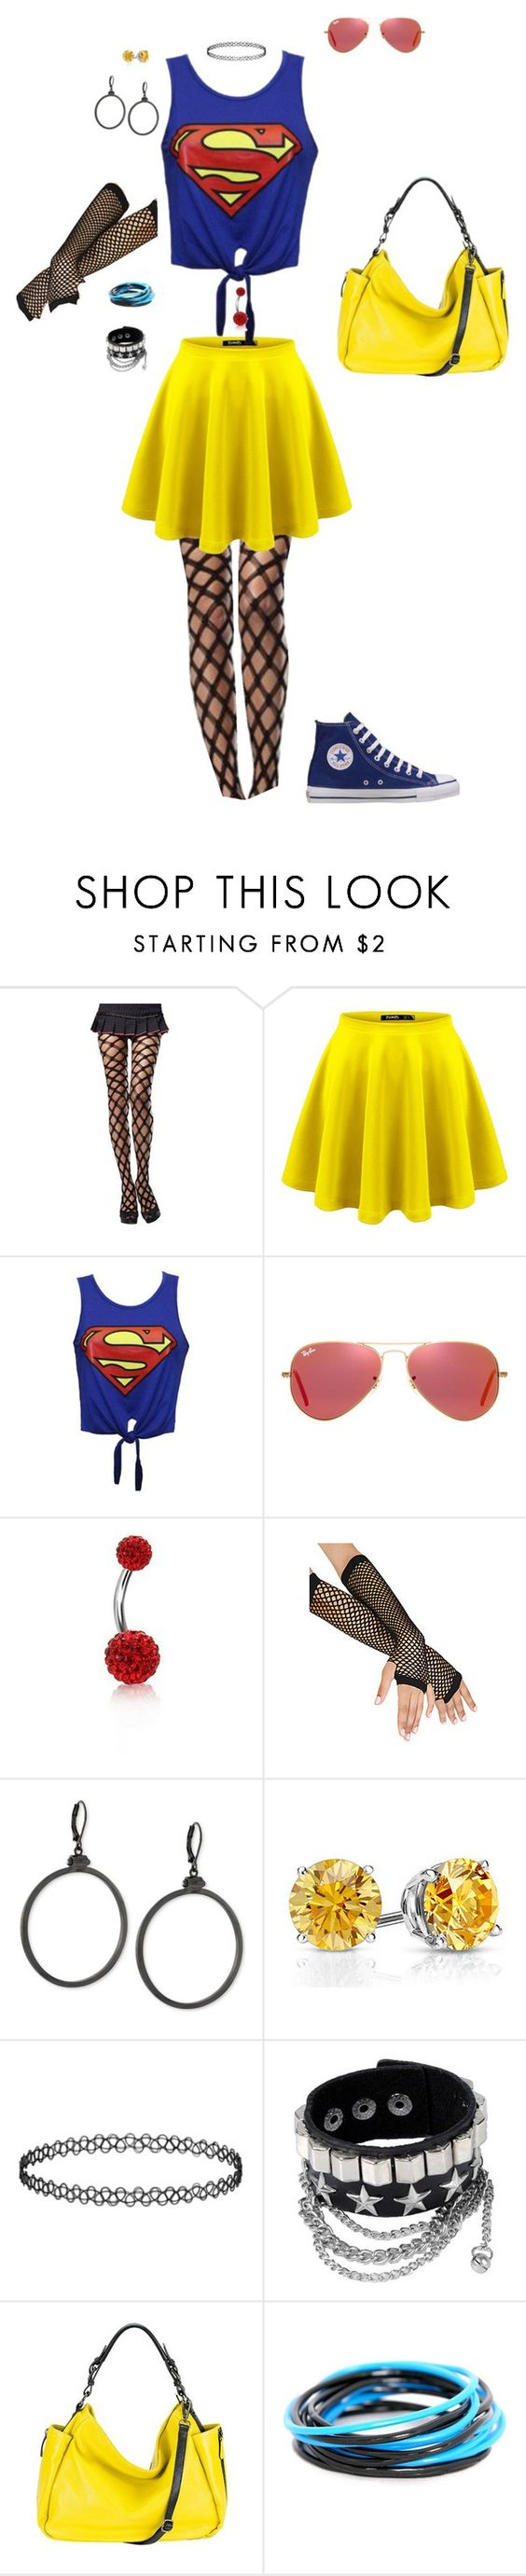 """SUPERMAN, DAH-DAH-DAHHHHHH!"" by candy-coated-doom ❤ liked on Polyvore featuring Leg Avenue, CO, Ray-Ban, Converse, Bling Jewelry, Vince Camuto, Topshop and MOFE"